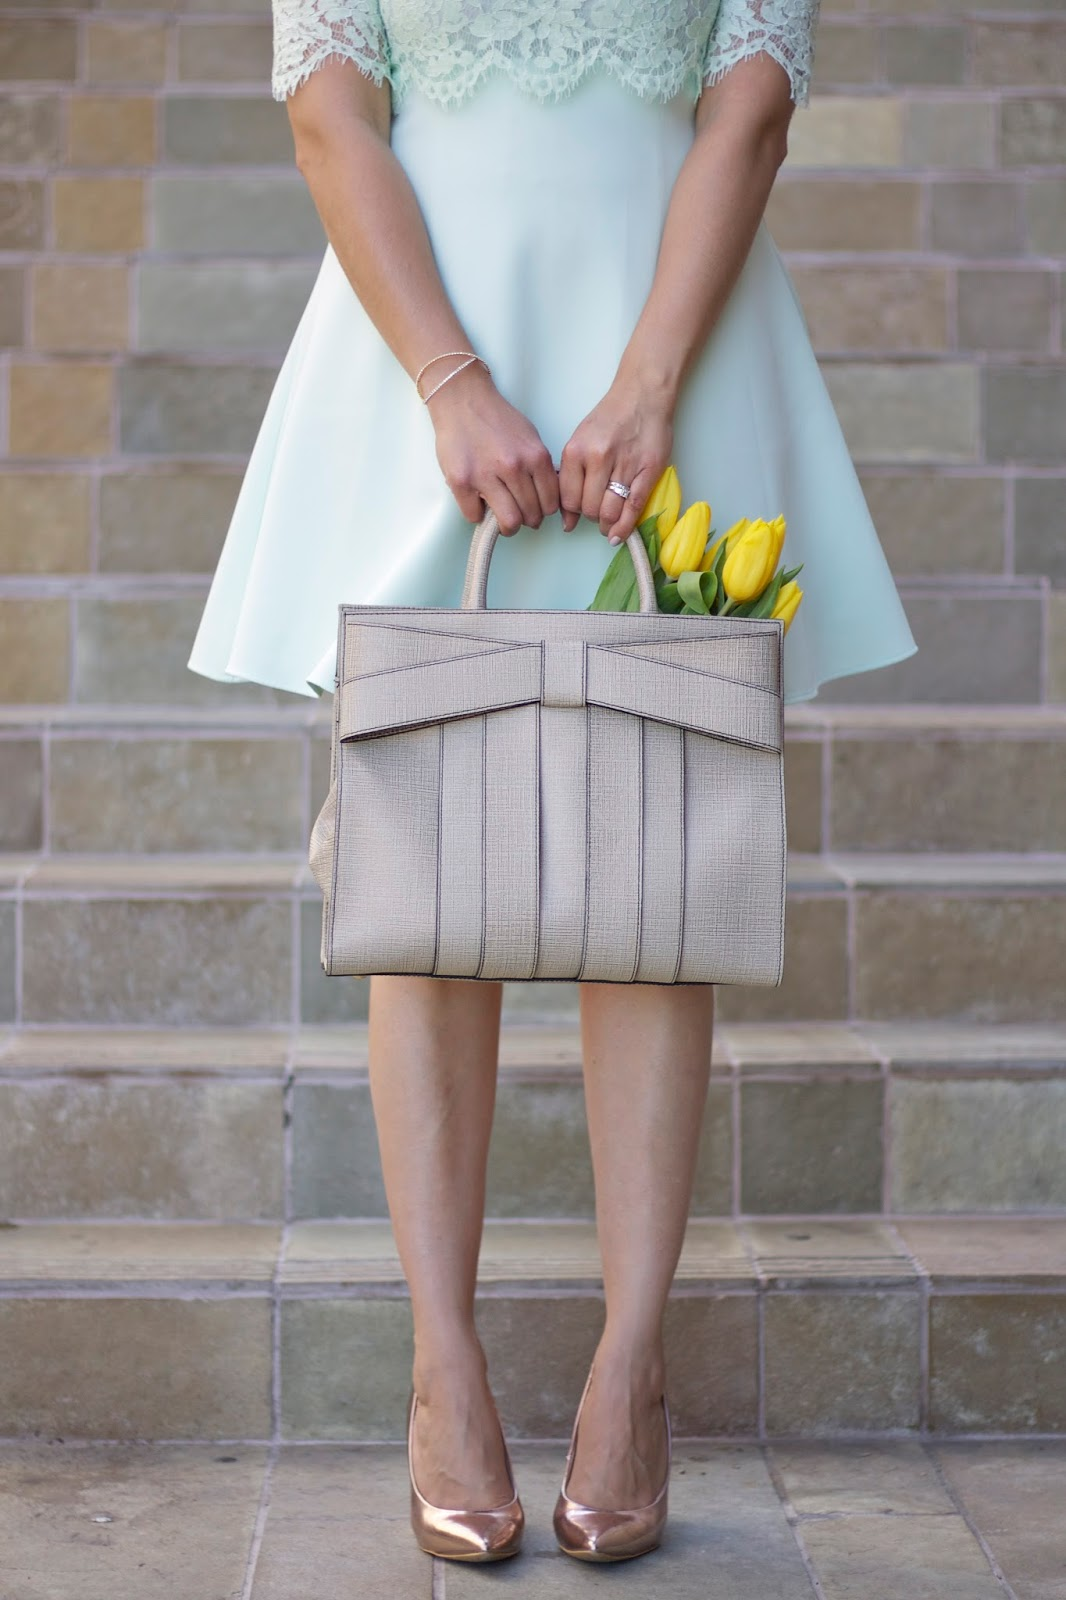 Pinterest worthy picture, bow handbag, Pretty pictures, elegant attire